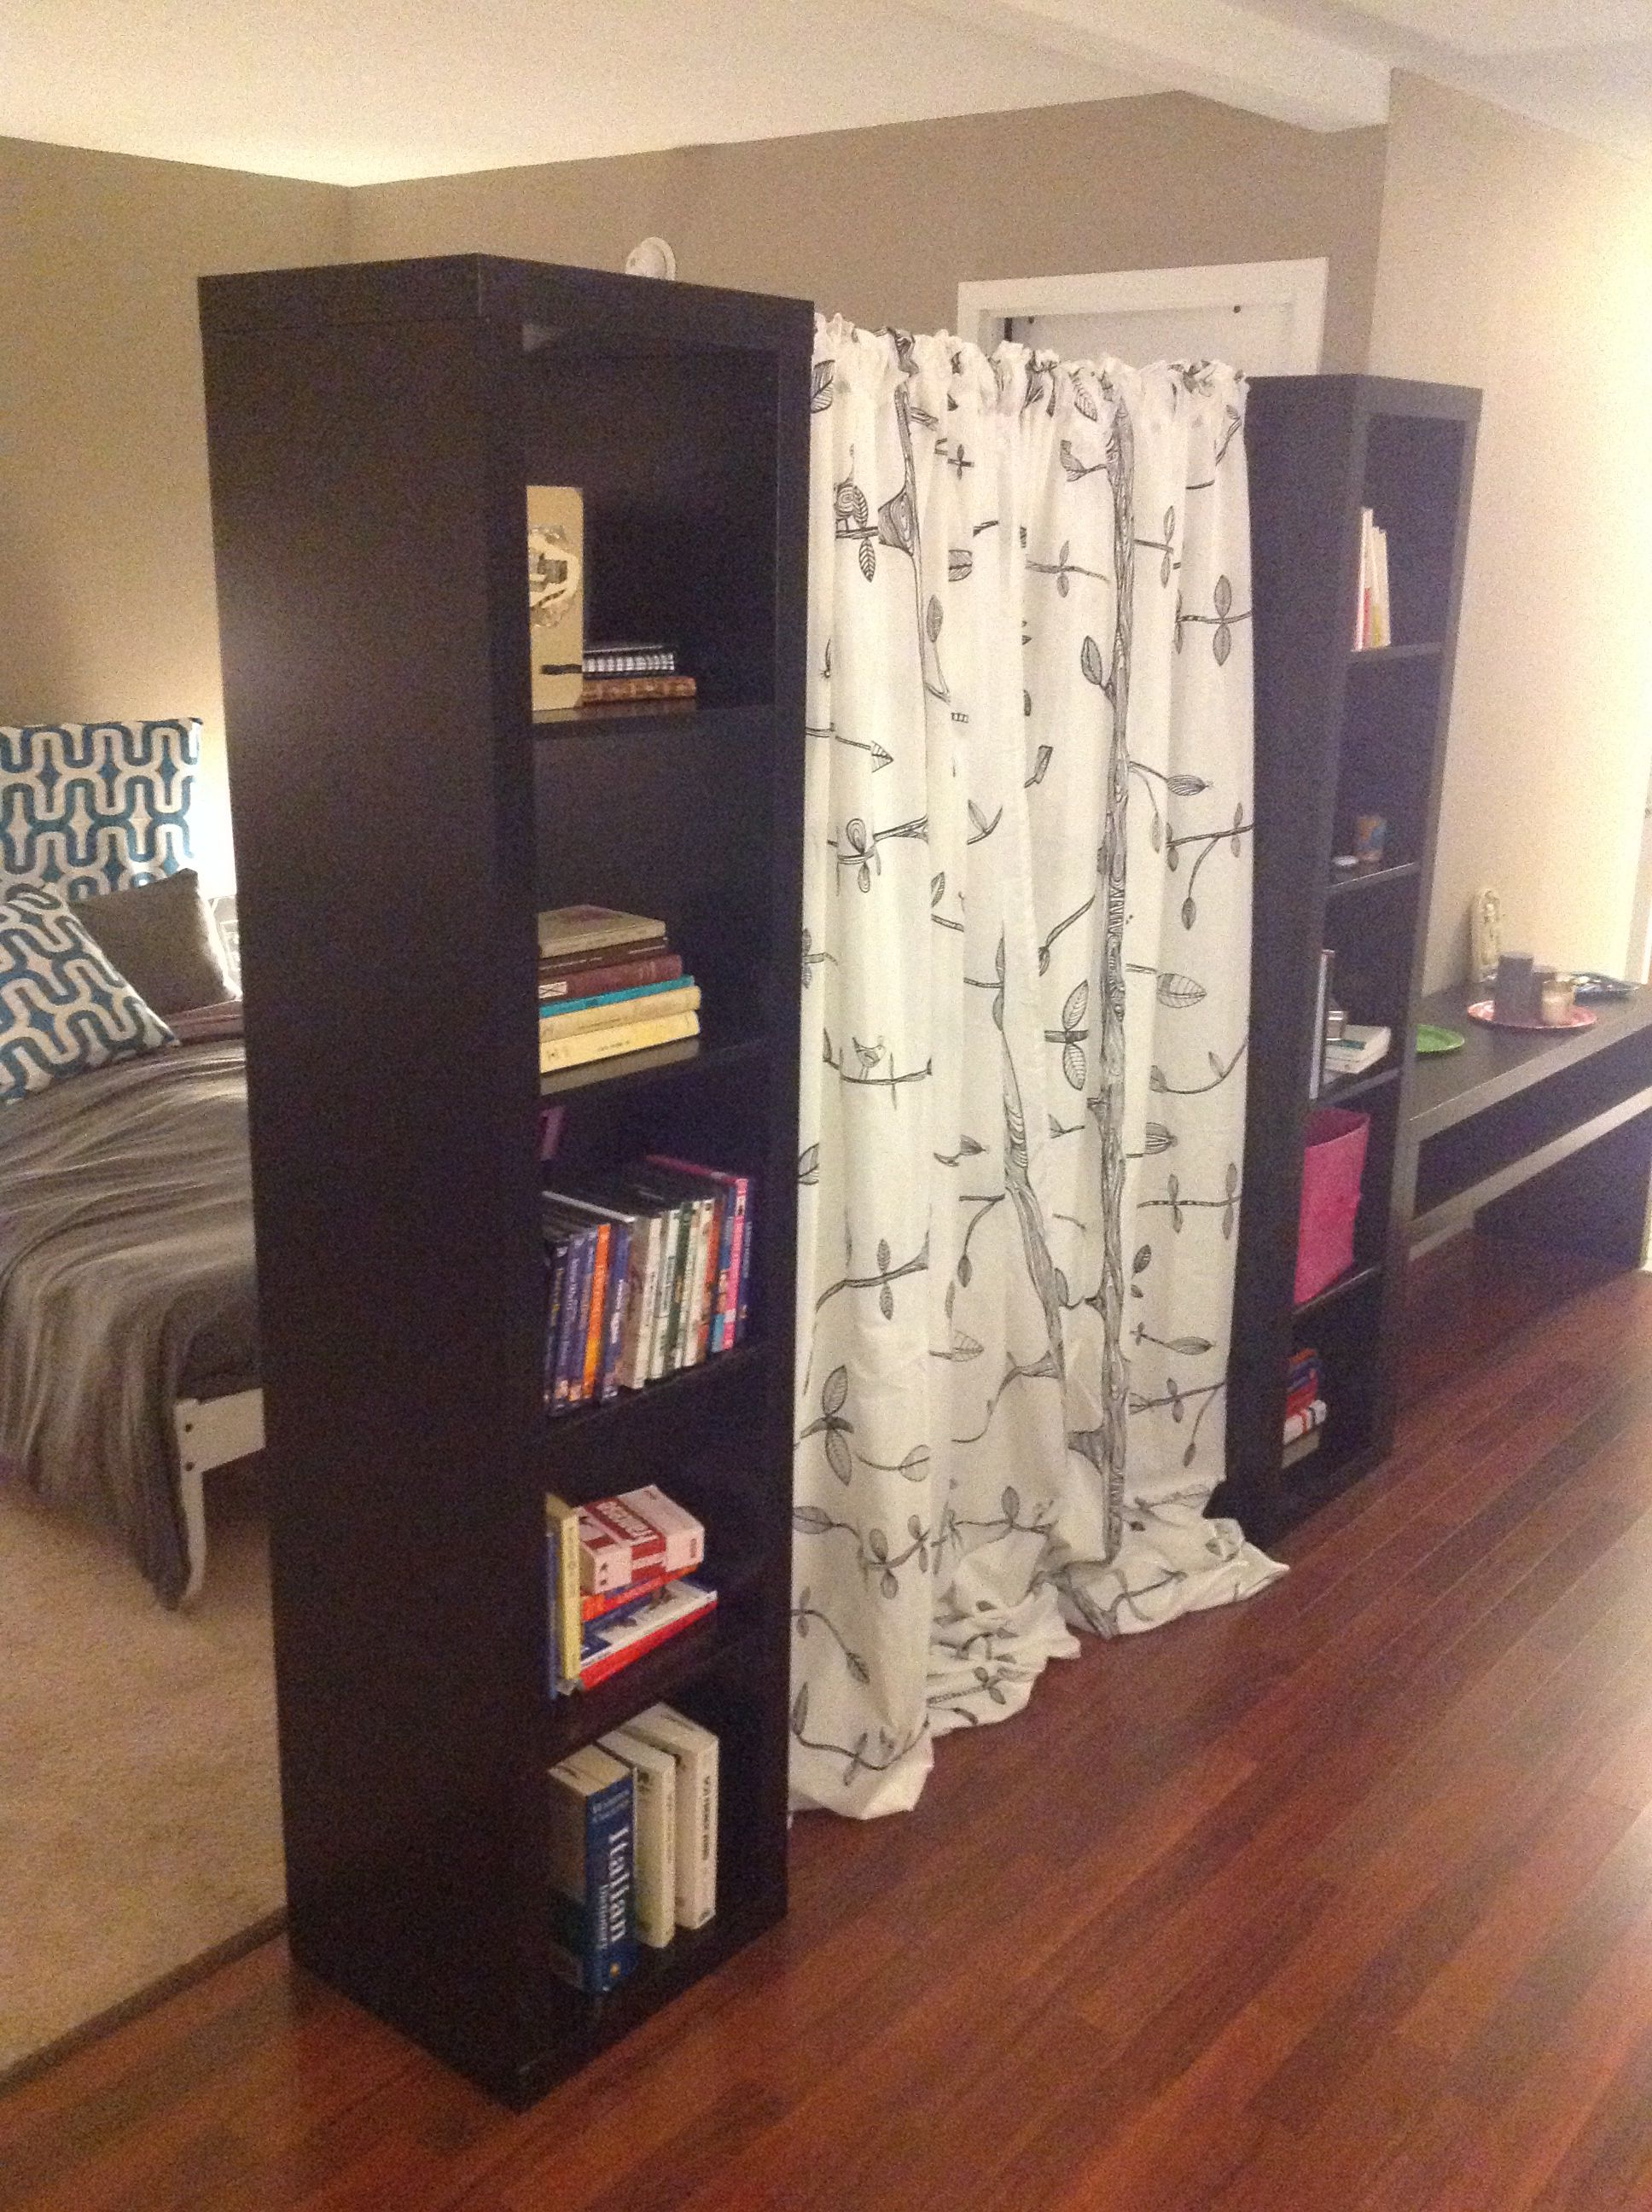 My room divider two Ikea bookshelves (EXPEDIT 60/each